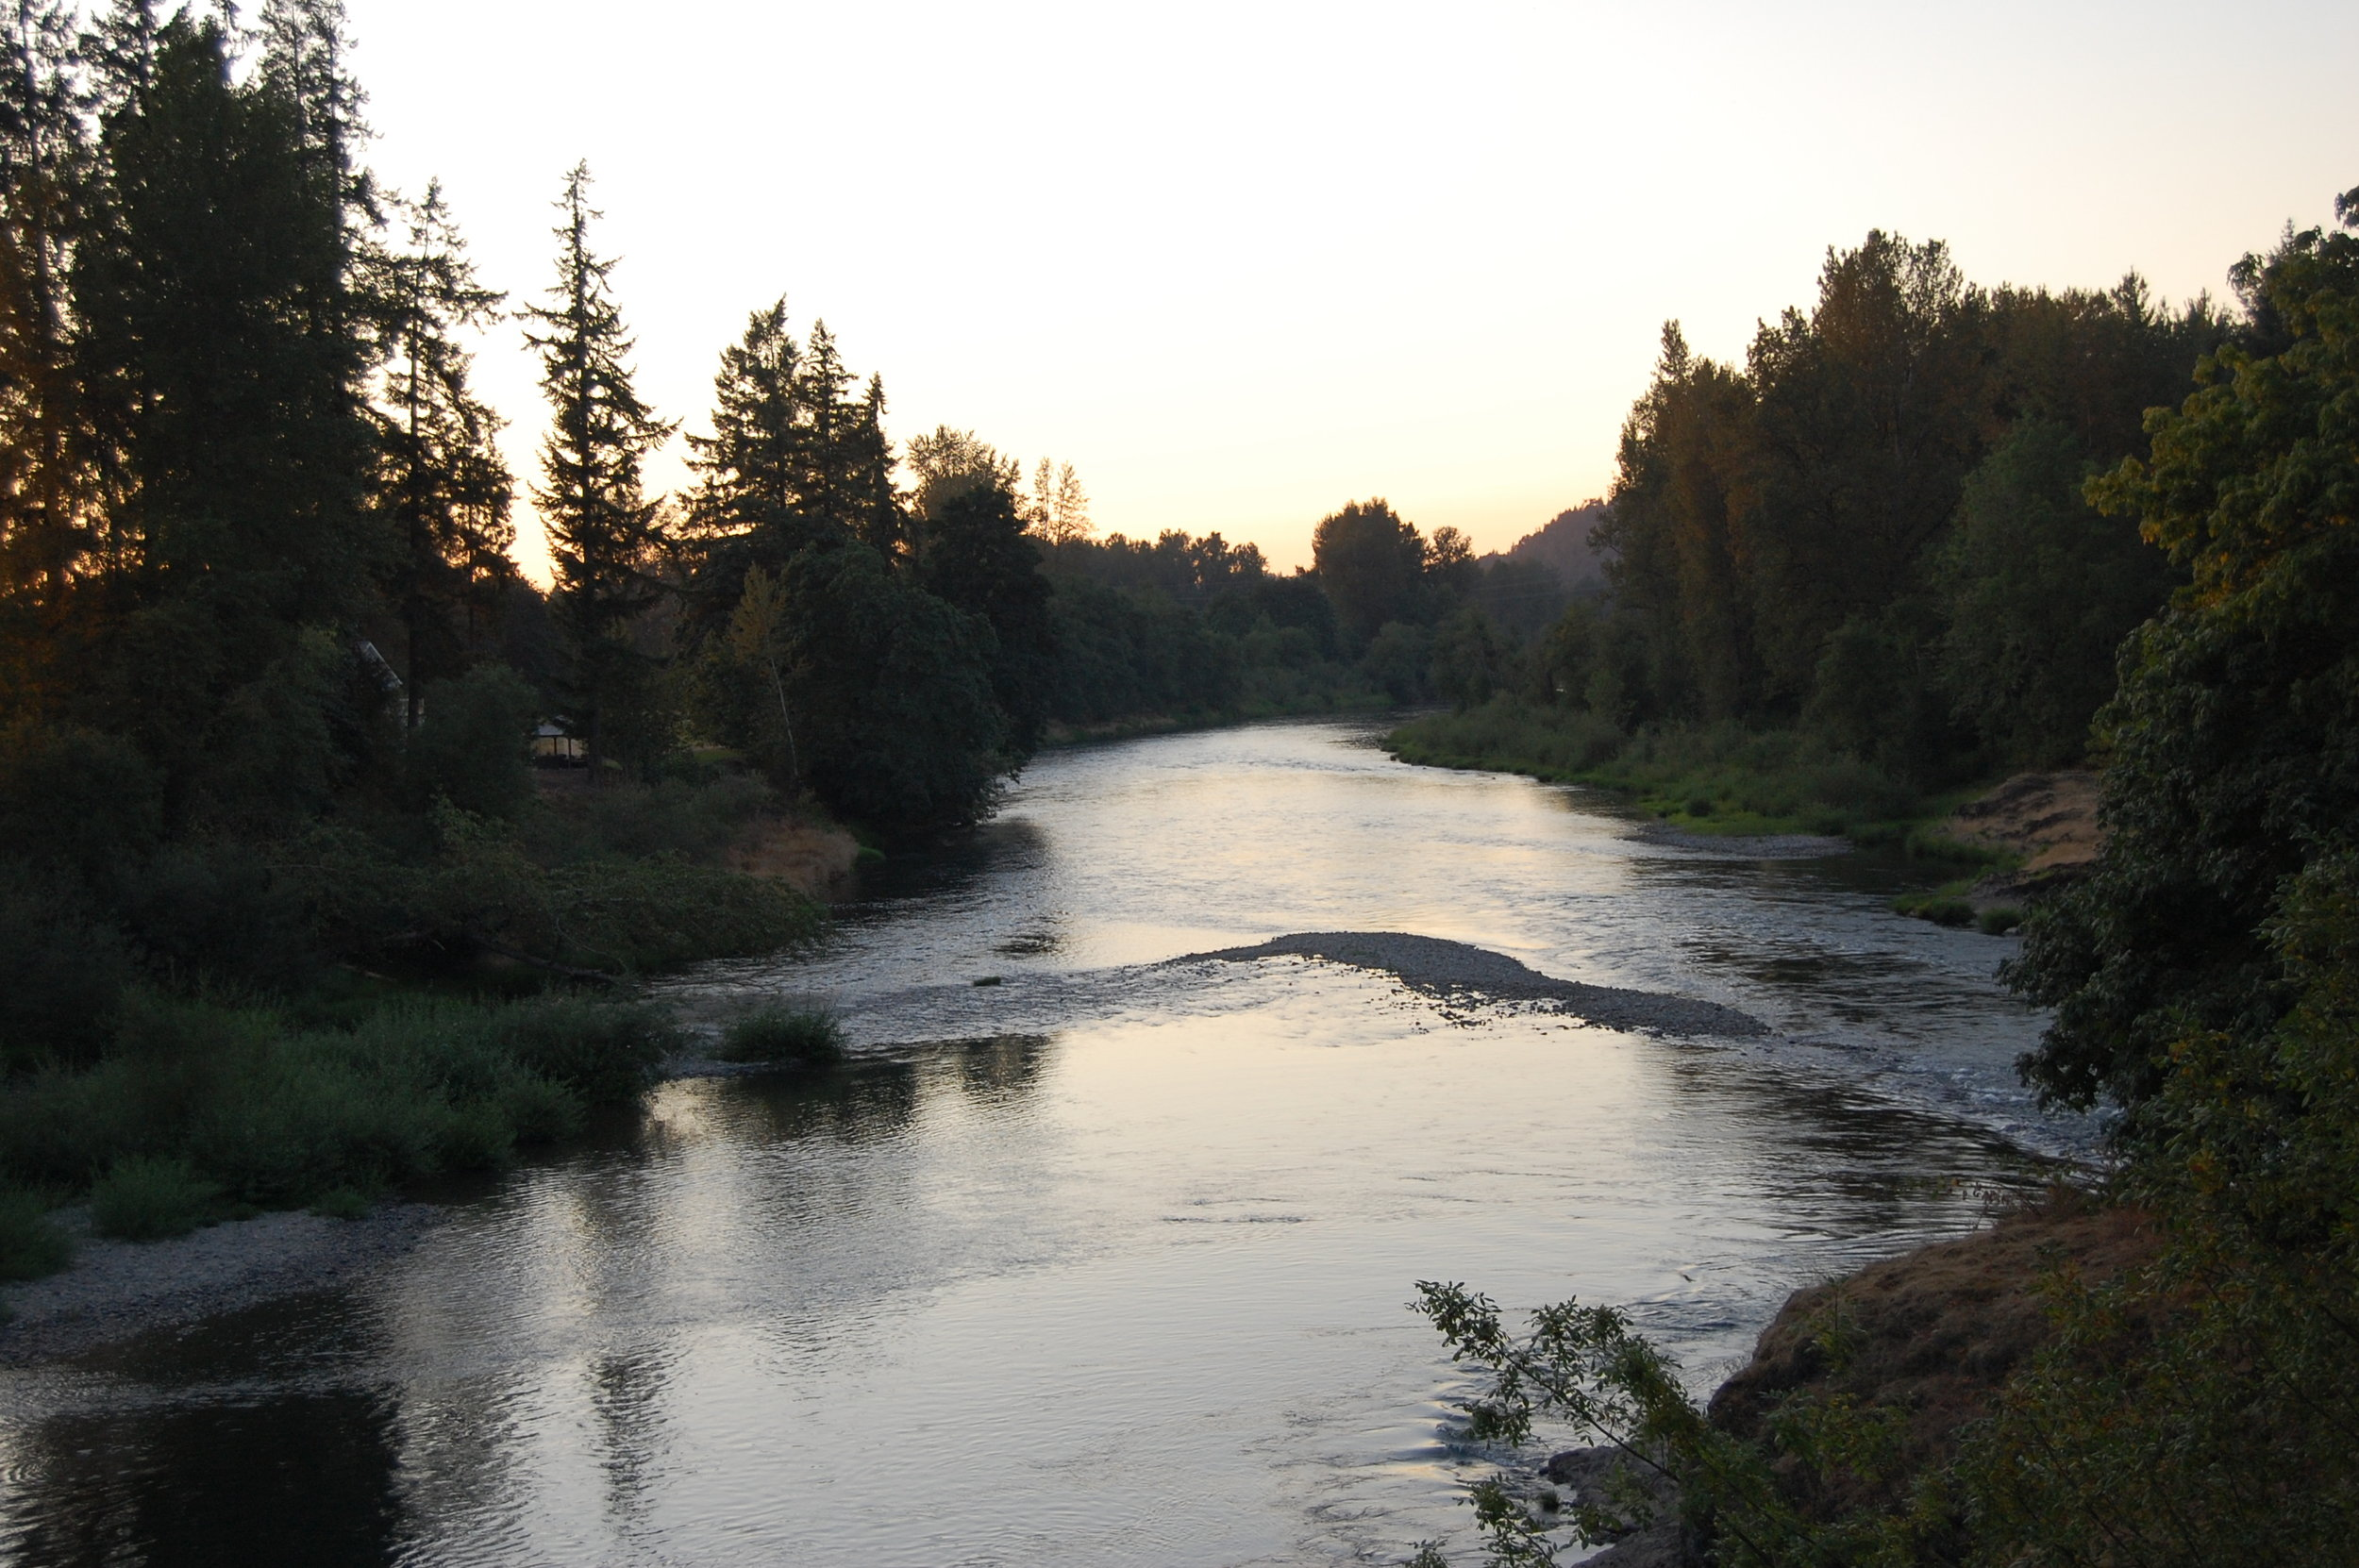 The beautiful Santiam River, between the towns o Sweet Home and Lebanon in the foothills of he Cascades. Early life was all around this river.